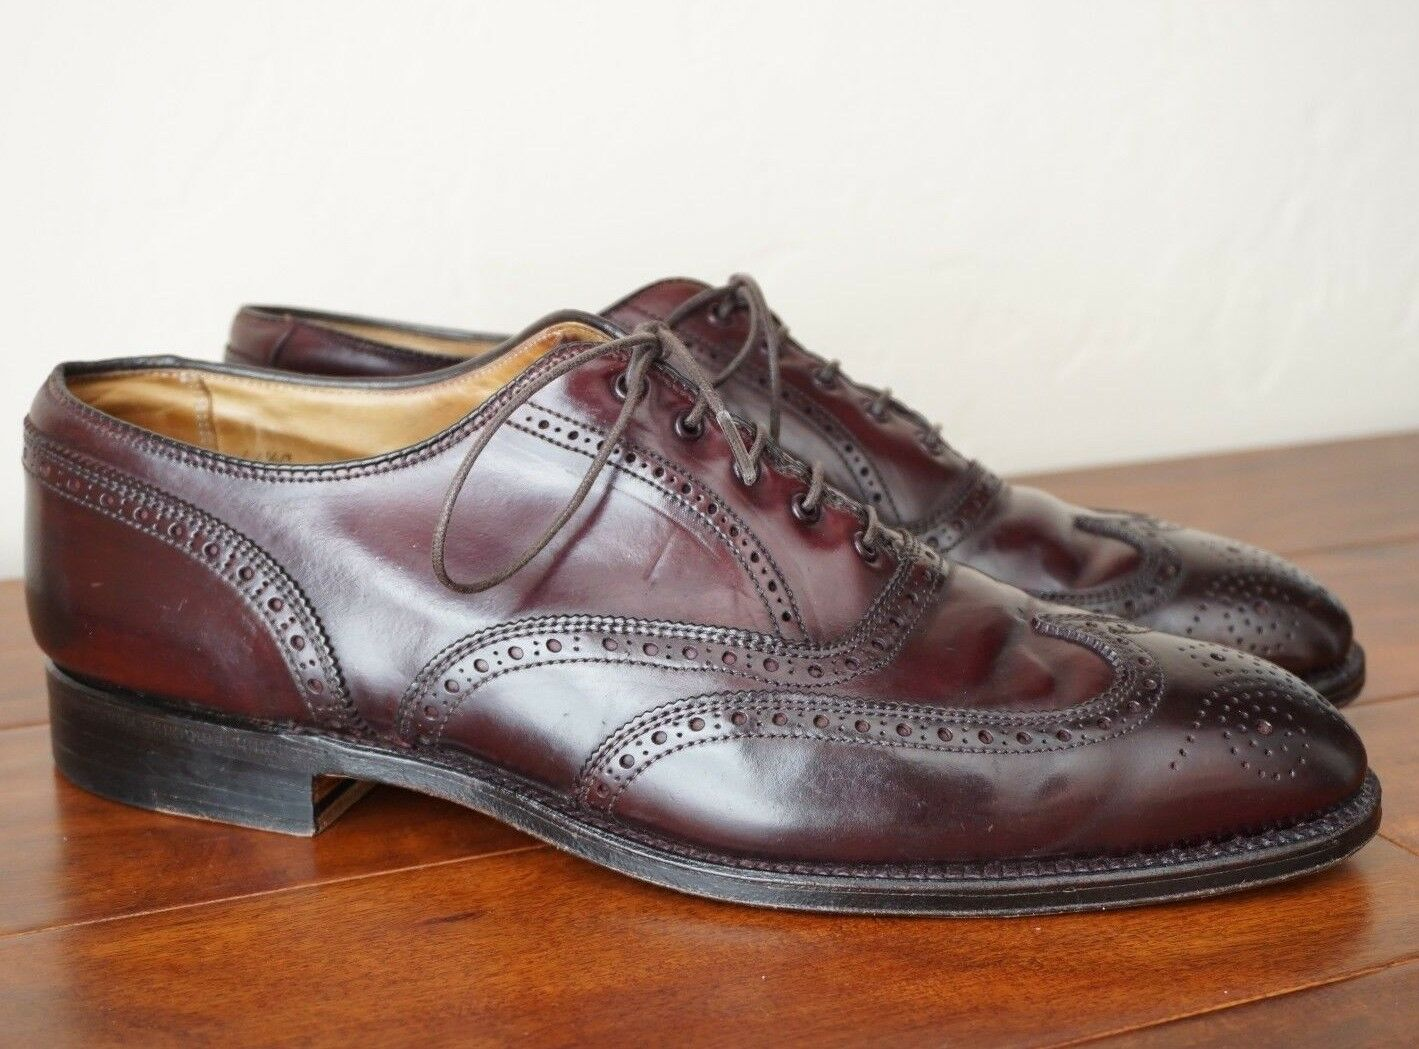 ALDEN 11.5 C BURGUNDY COLOR 8 SHELL CORDOVAN WINGTIP BALMORAL OXFORD